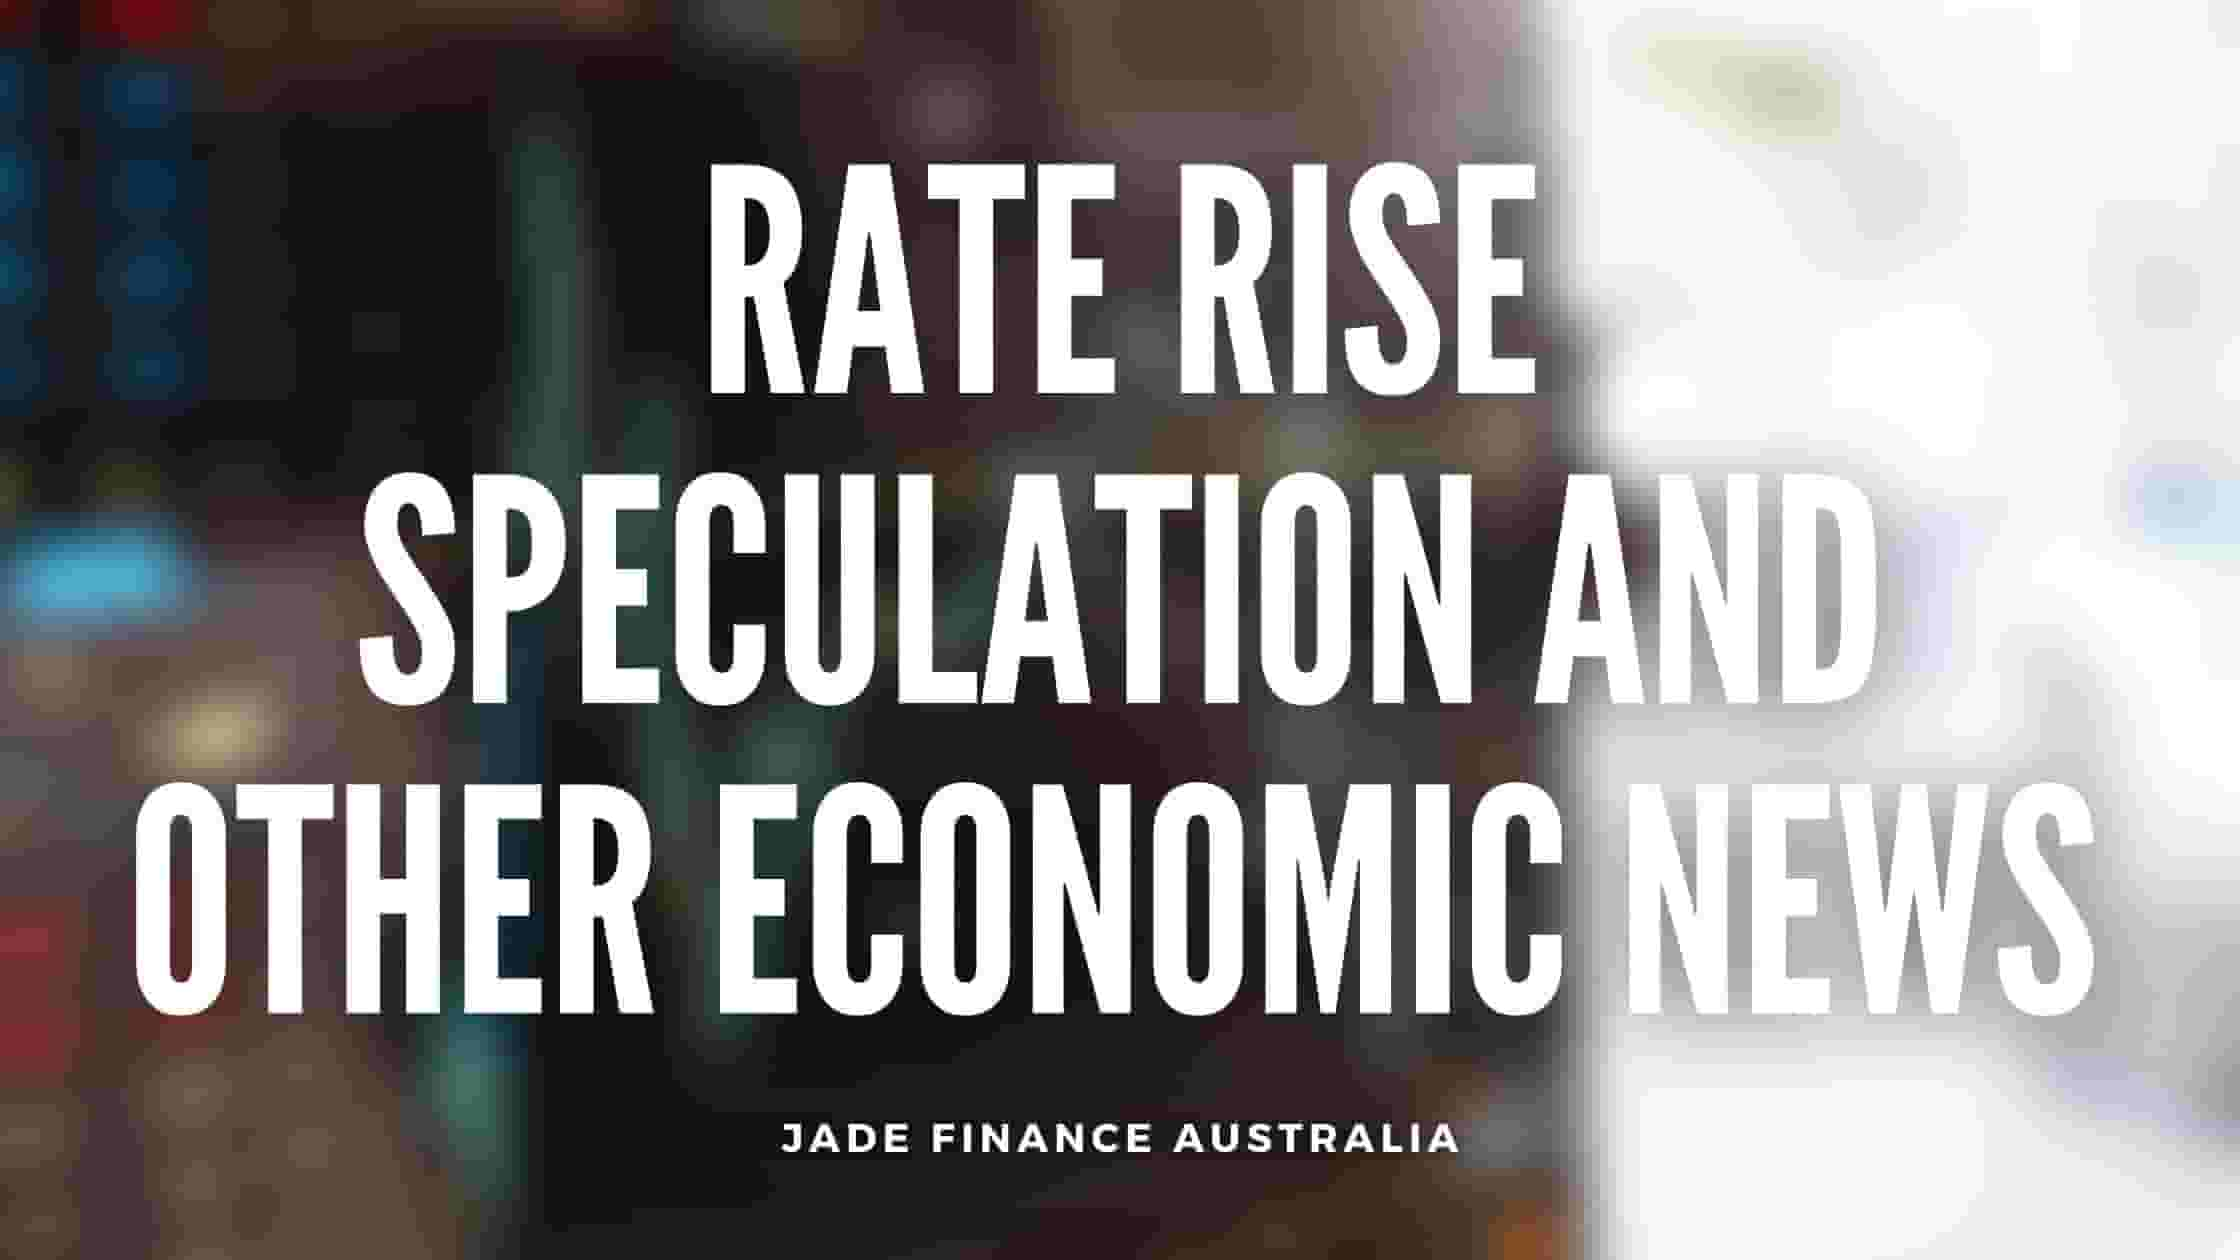 Rate Rise Speculation and other Economic News